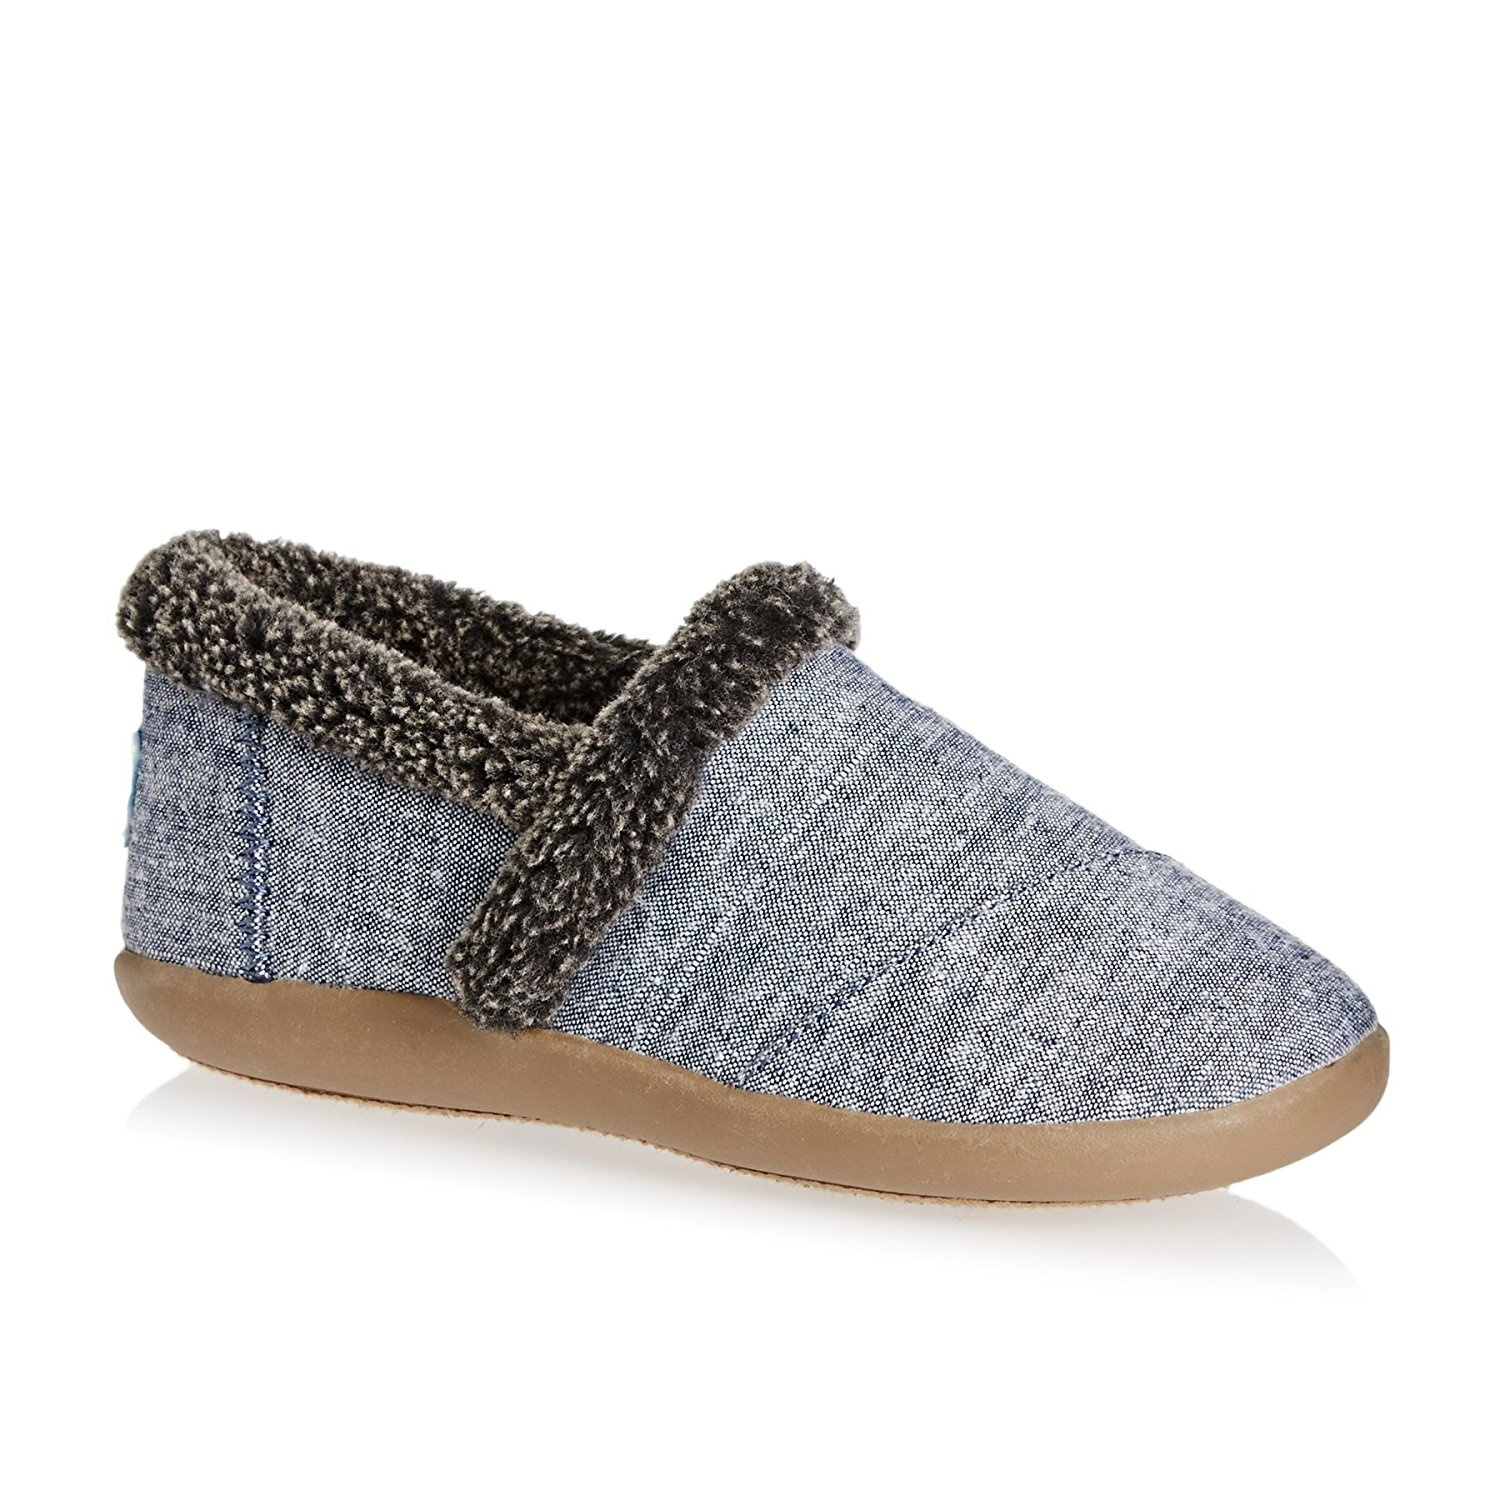 80b9b47b745 Details about Kids Toms Girls Chambray